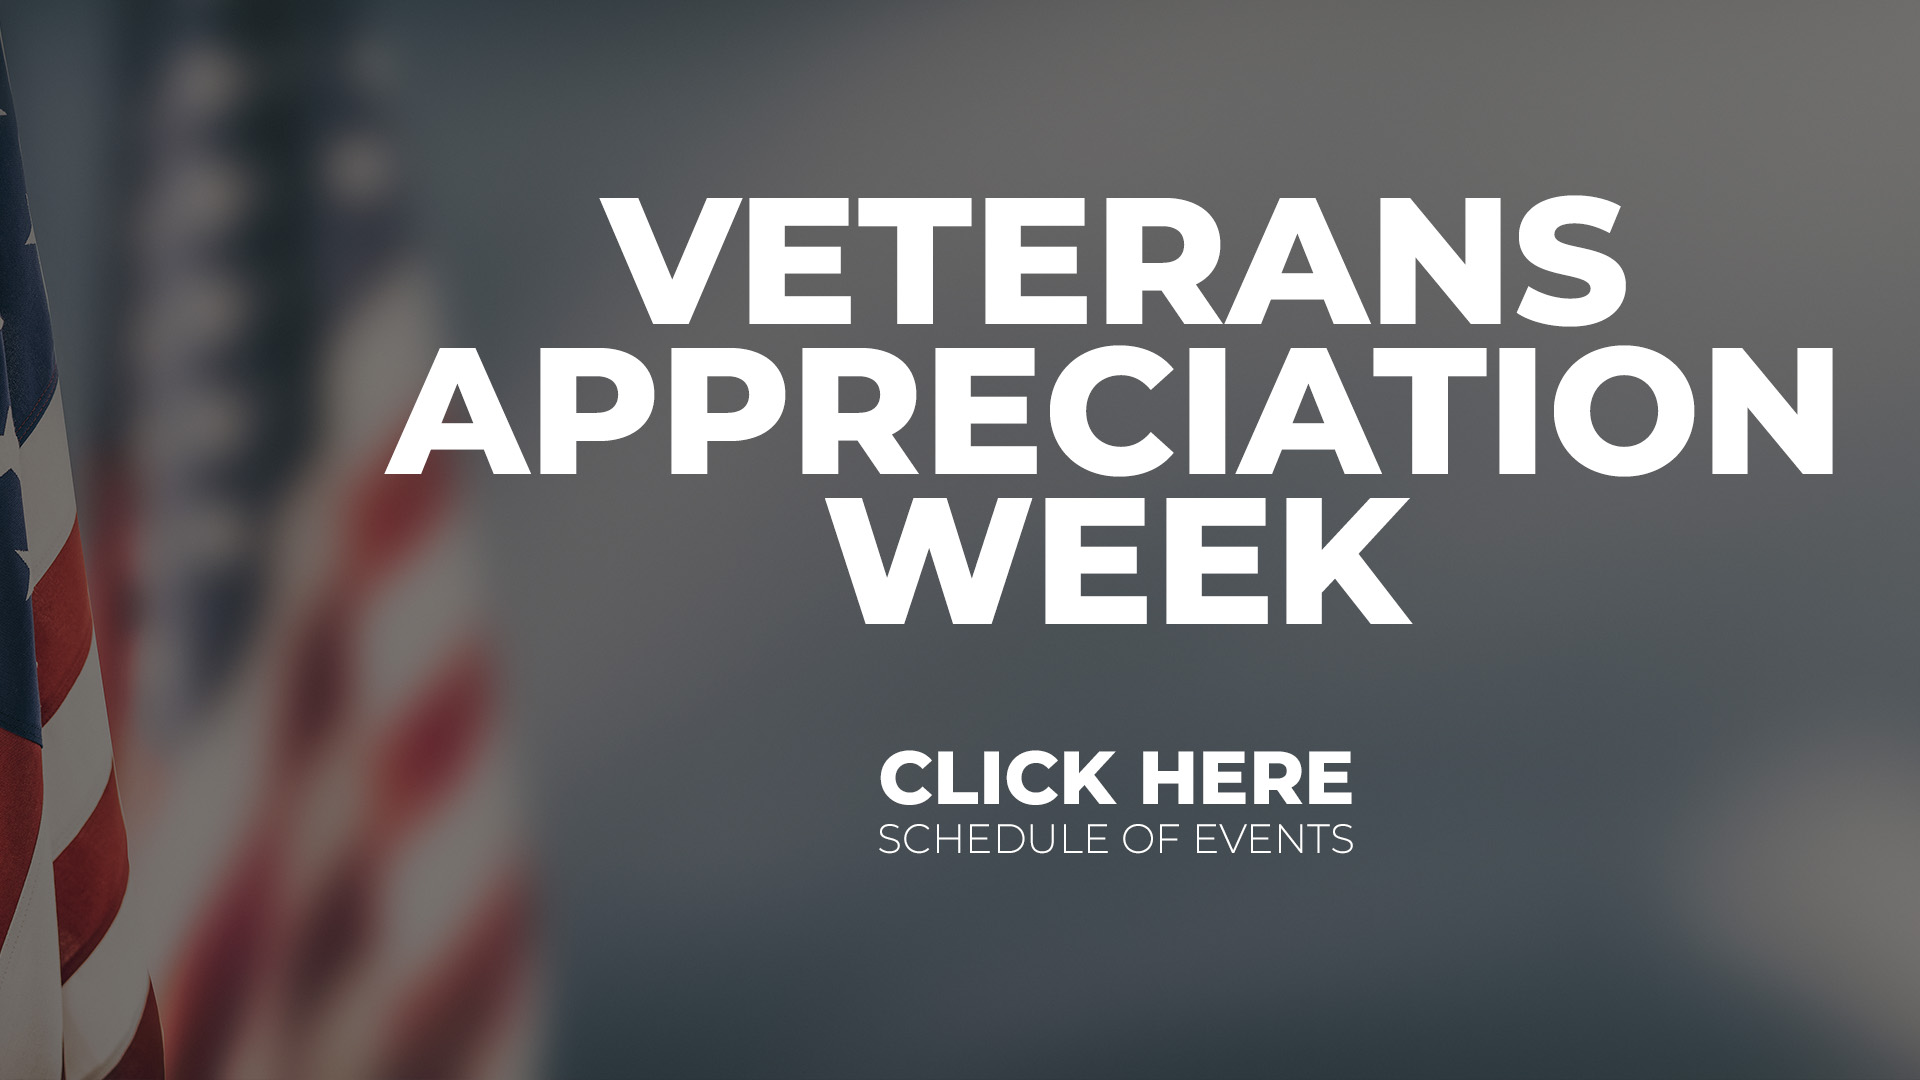 Veterans Appreciation Week. Click here for schedule of events.